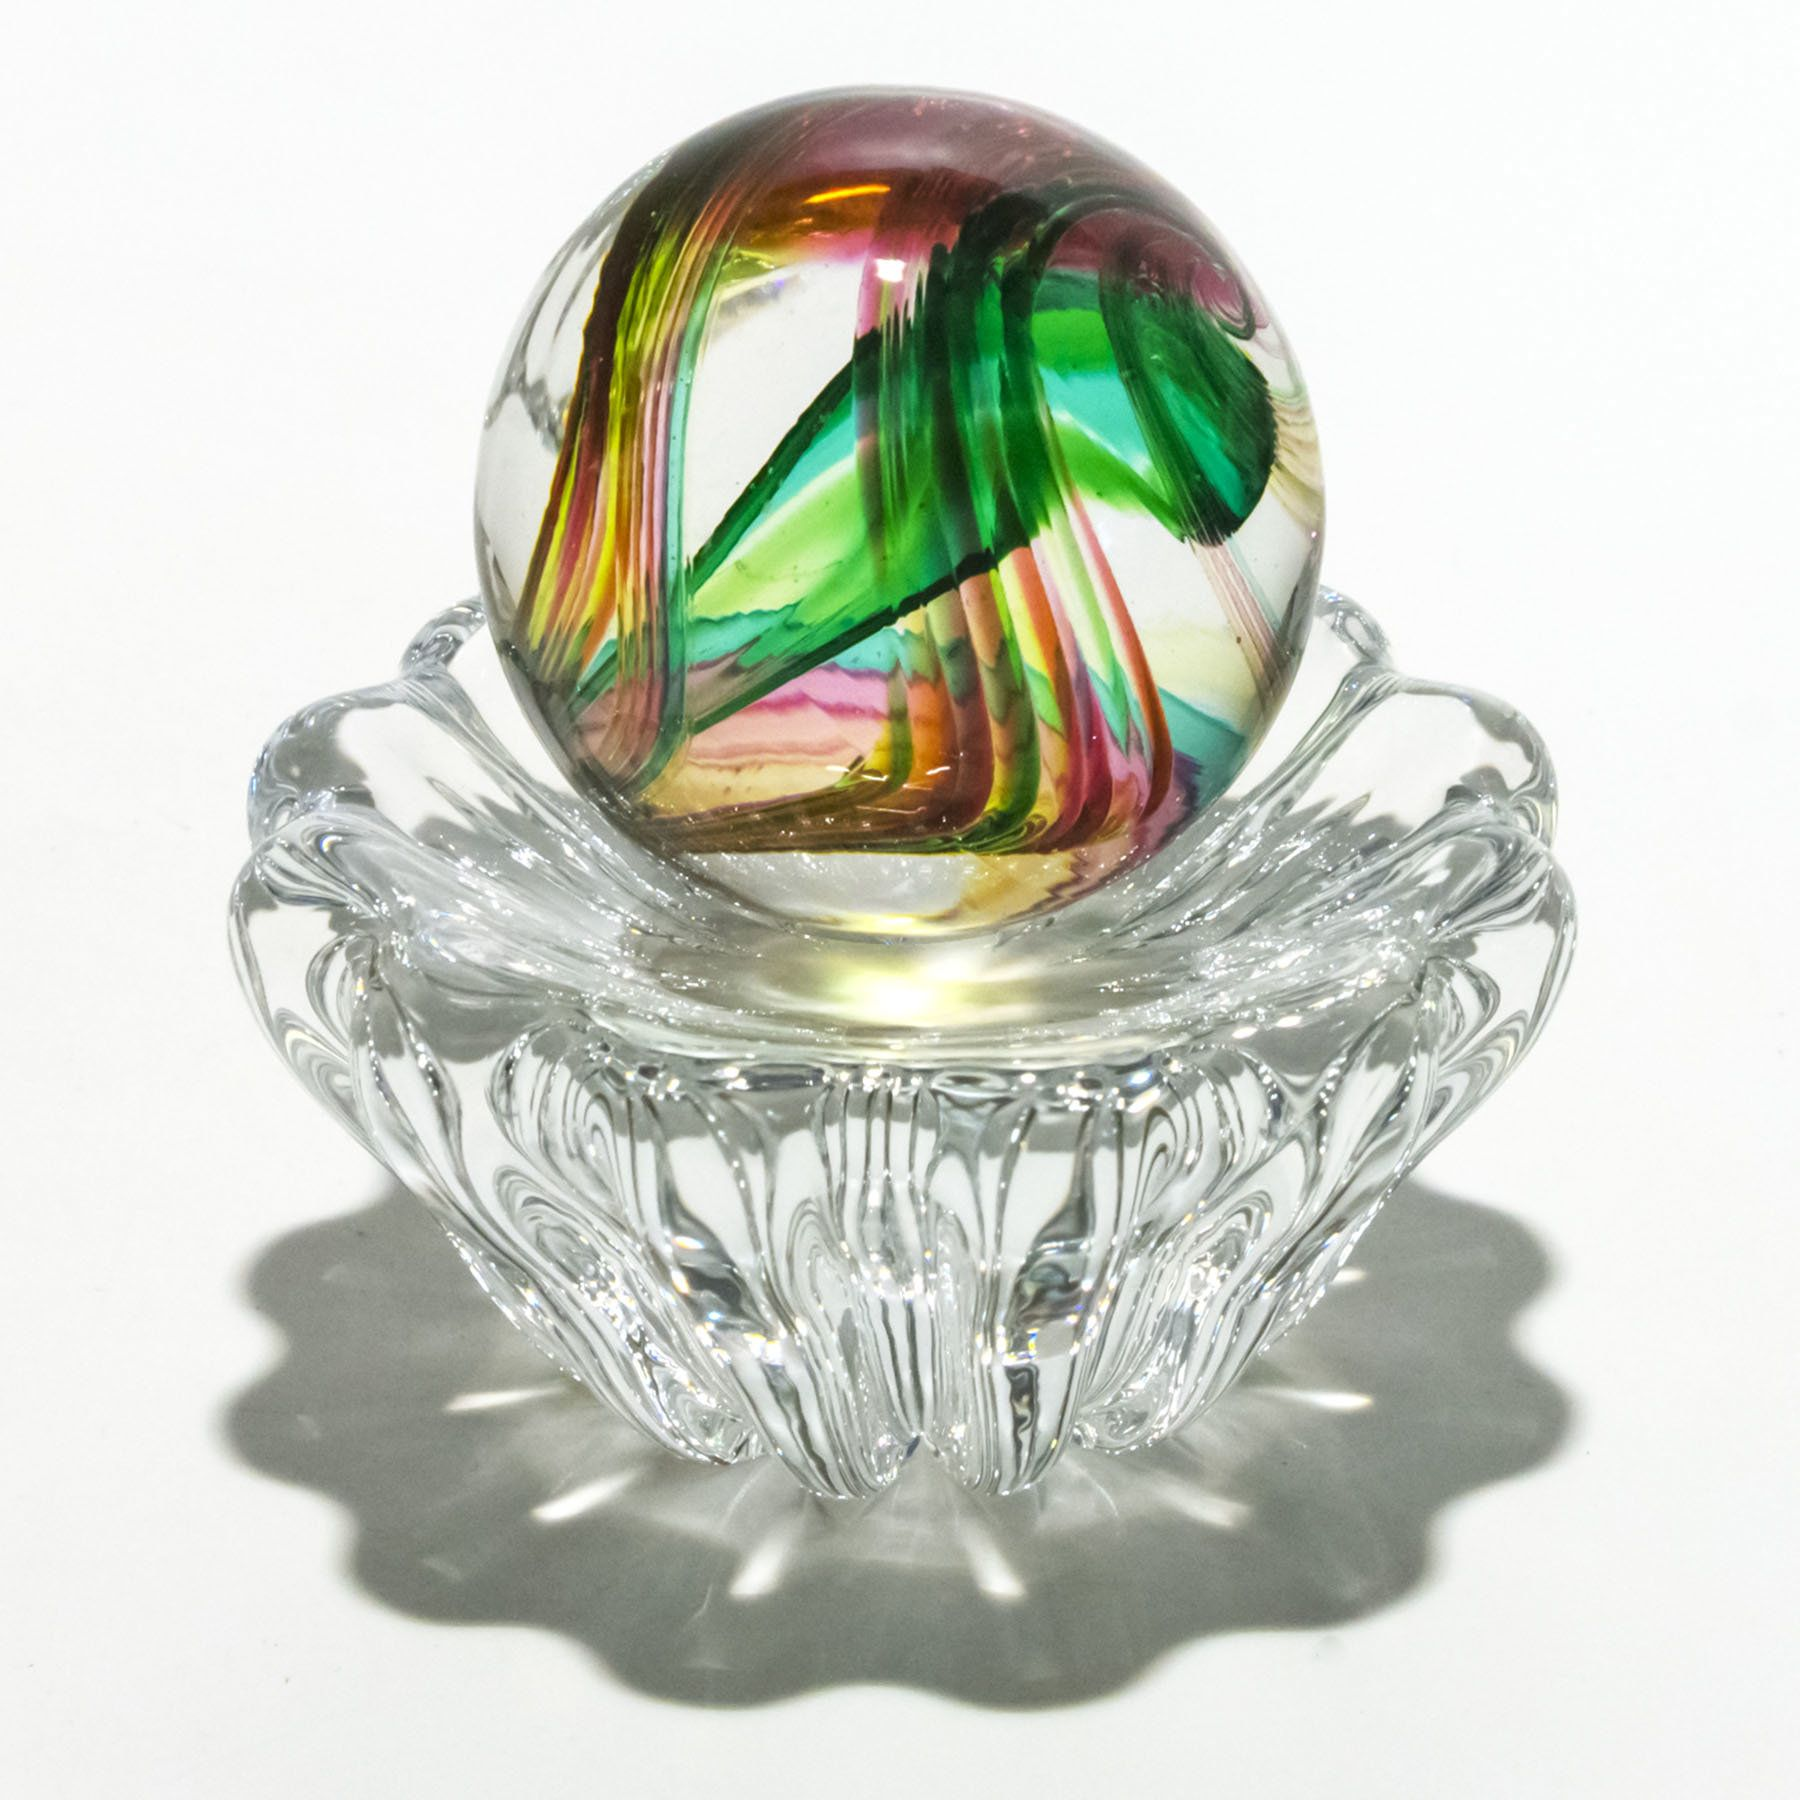 Marble In Spring On 12 Rib Twist Dish By Michael Trimpol And Monique Lajeunesse Art Glass Paperweight Glass Paperweights Glass Art Glass Marbles